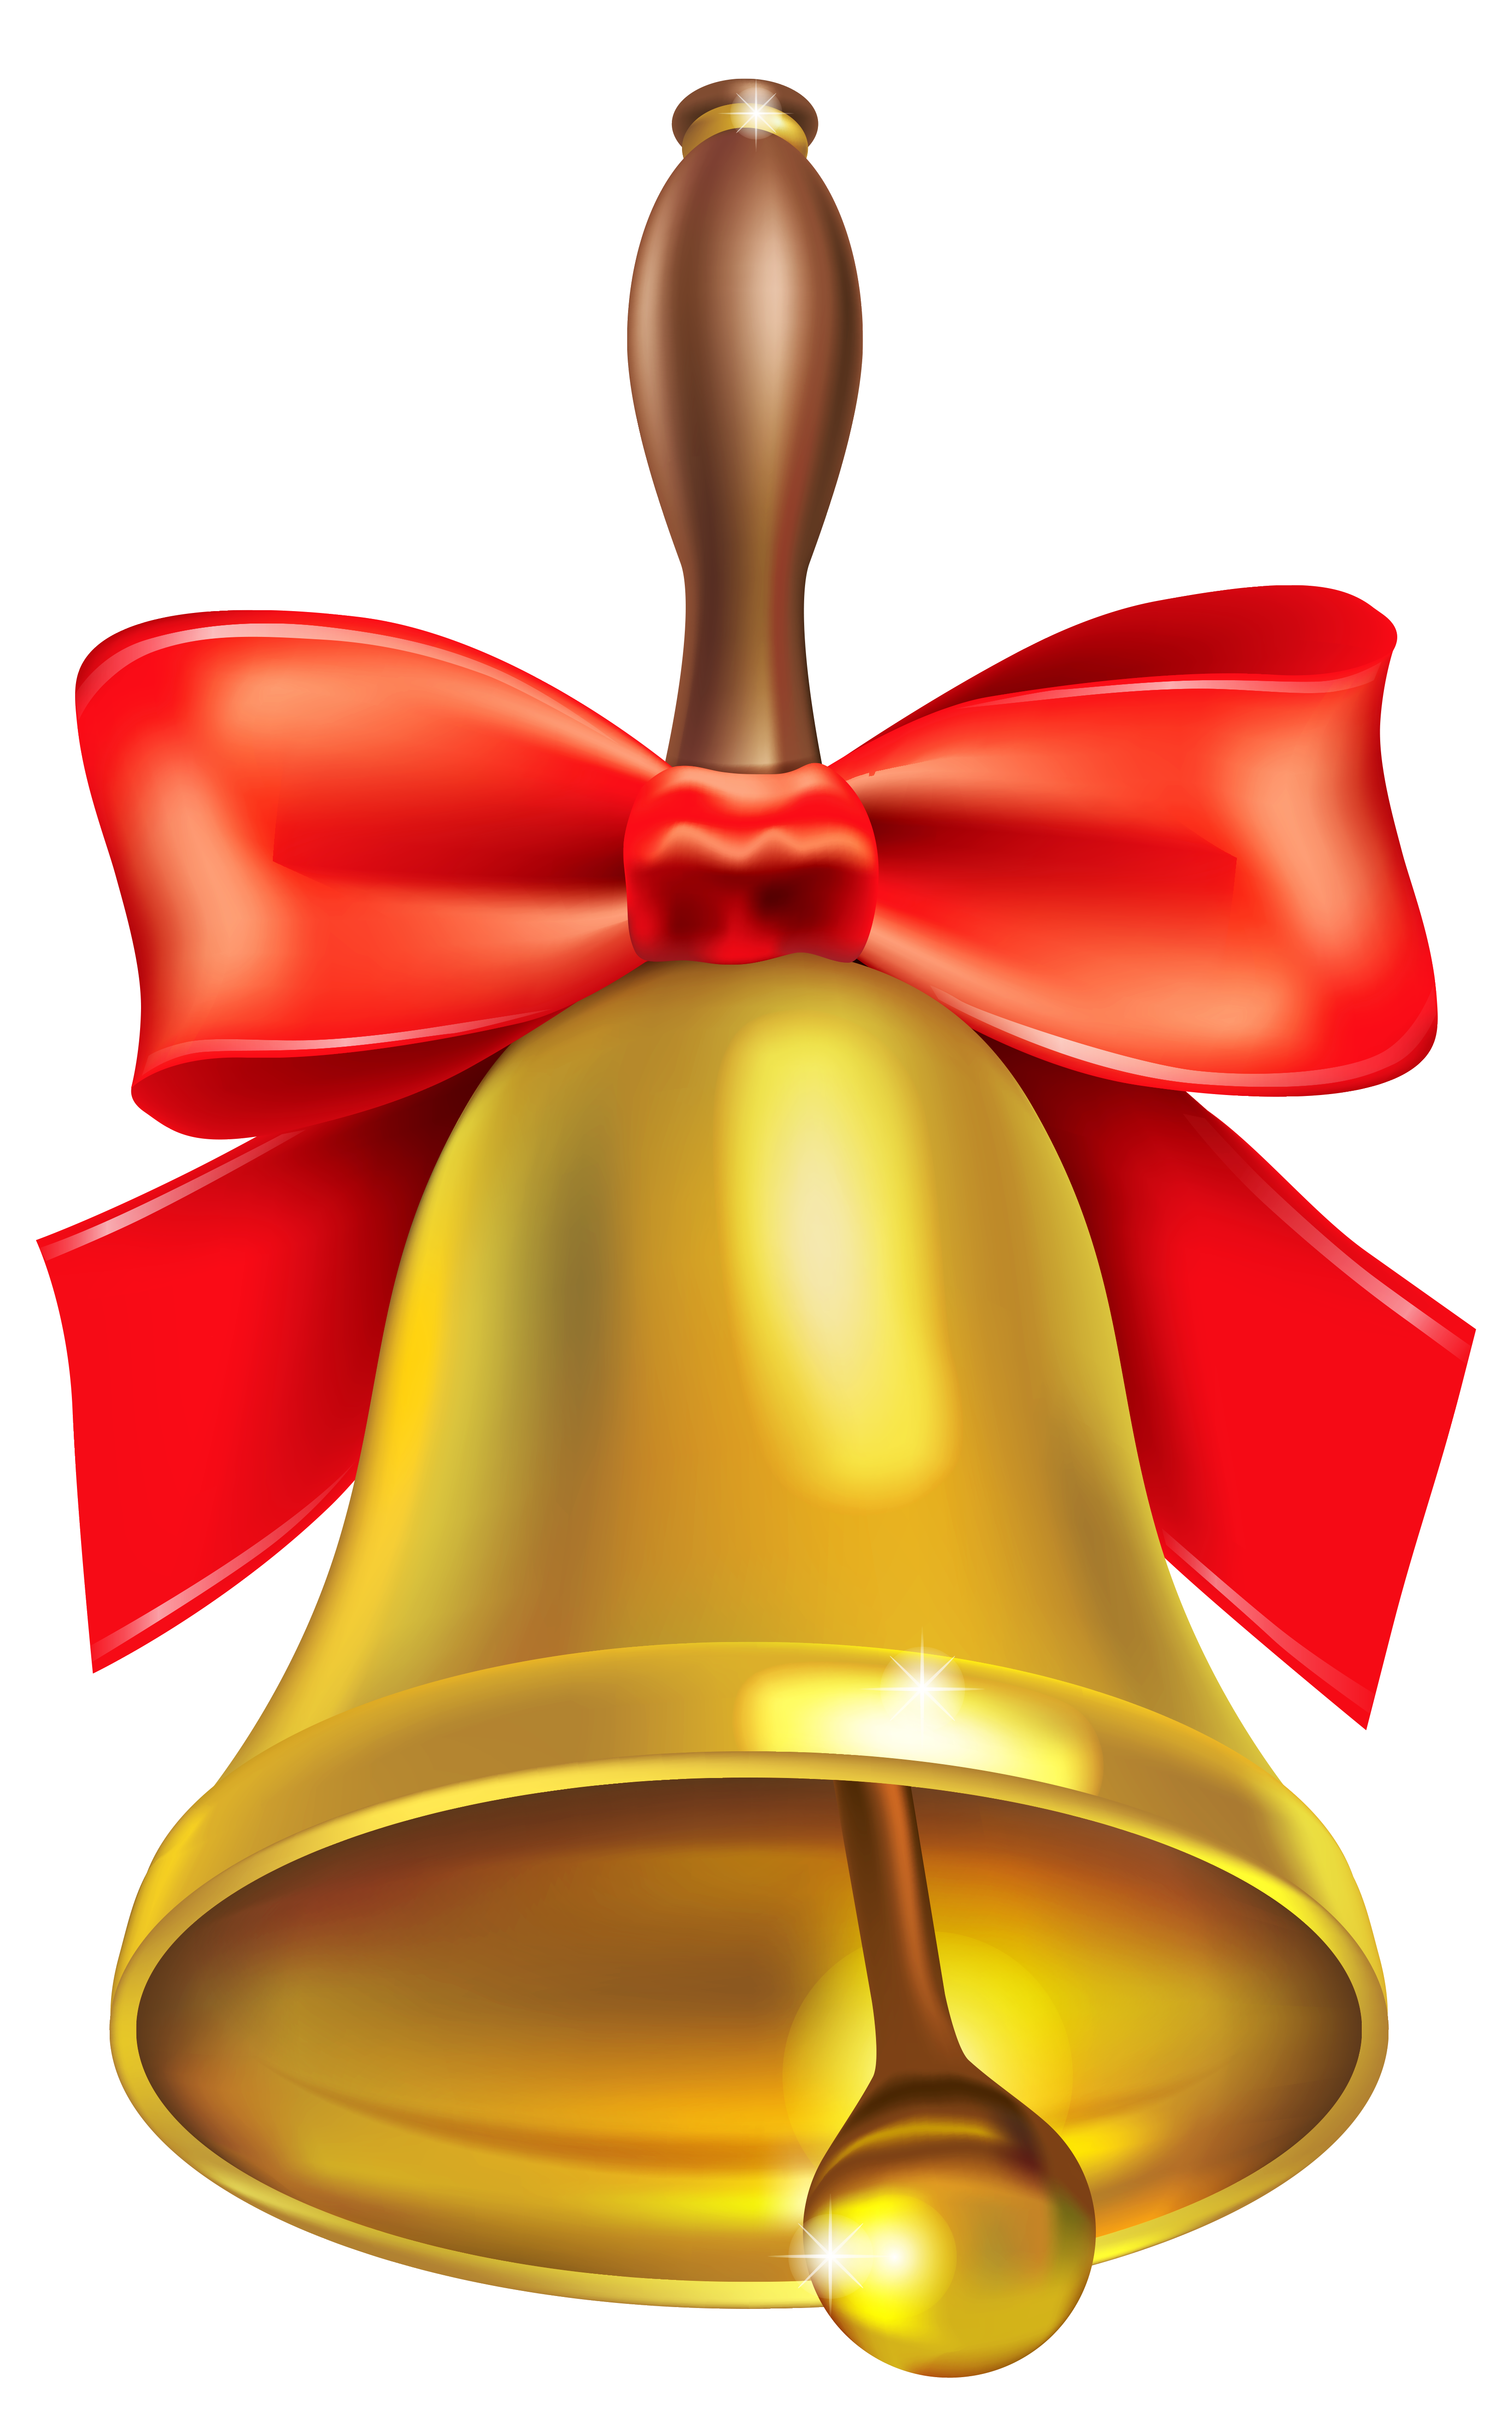 Bell PNG - 23303